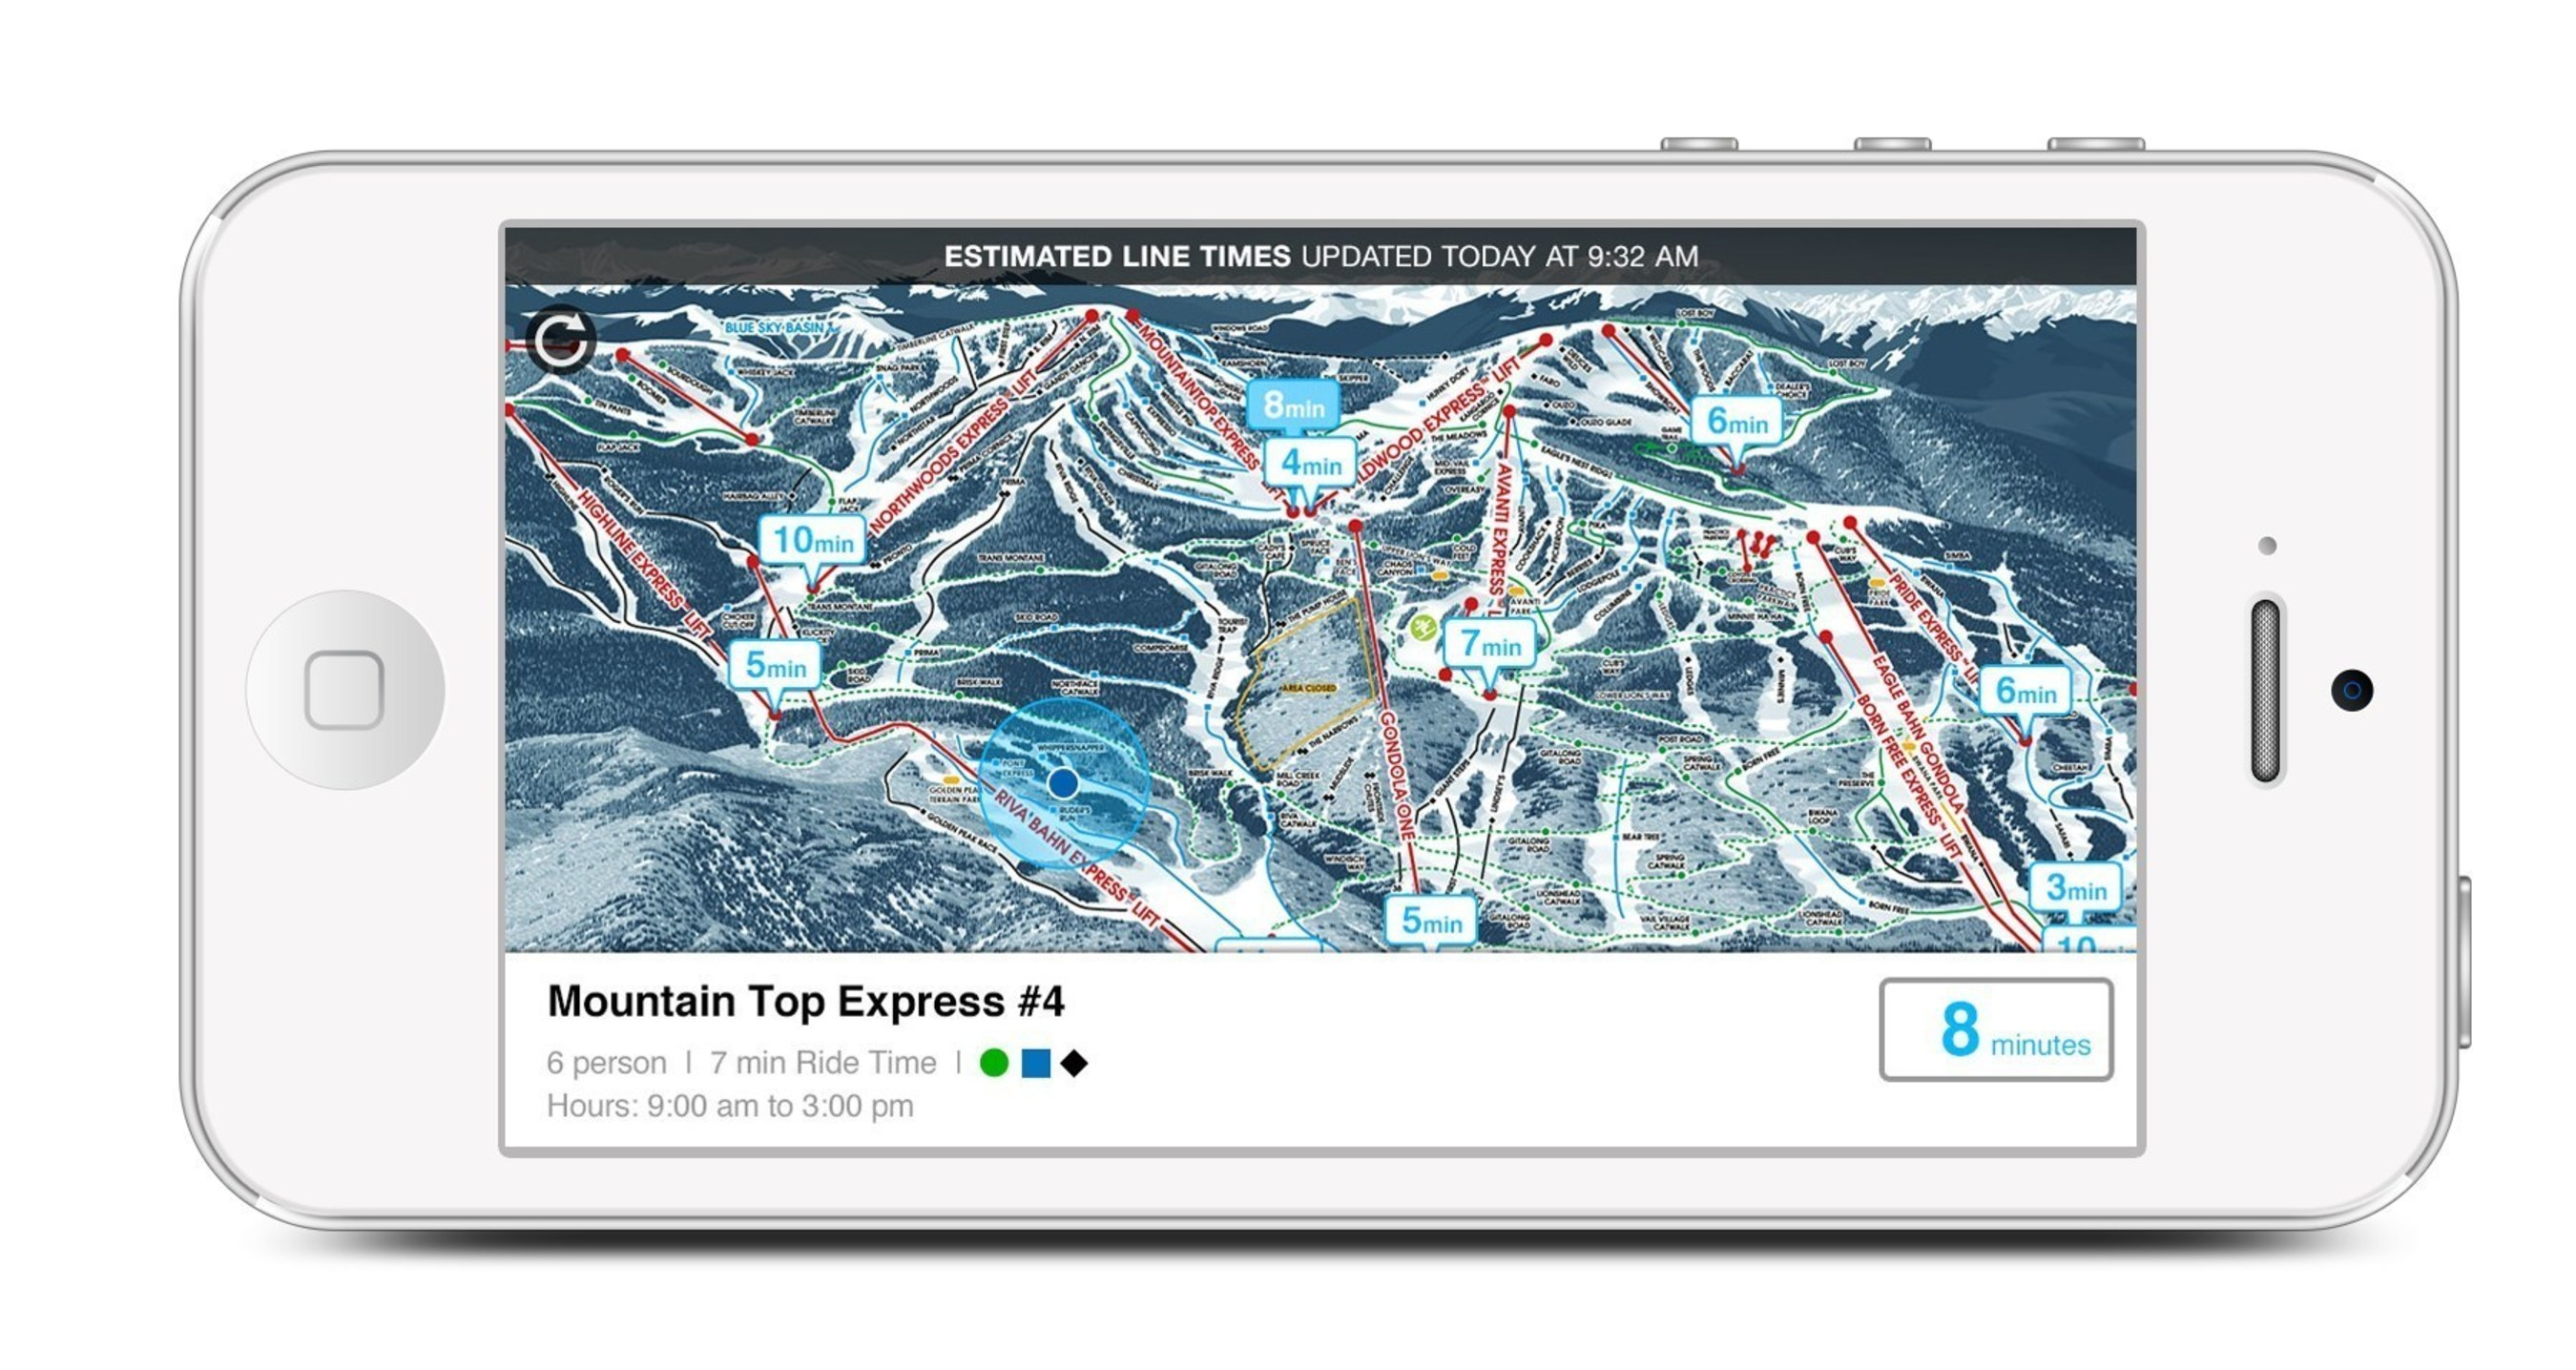 Vail Resorts' EpicMix Time is Now Live and Will Give Guests Access to Real-Time Lift Line Wait Times